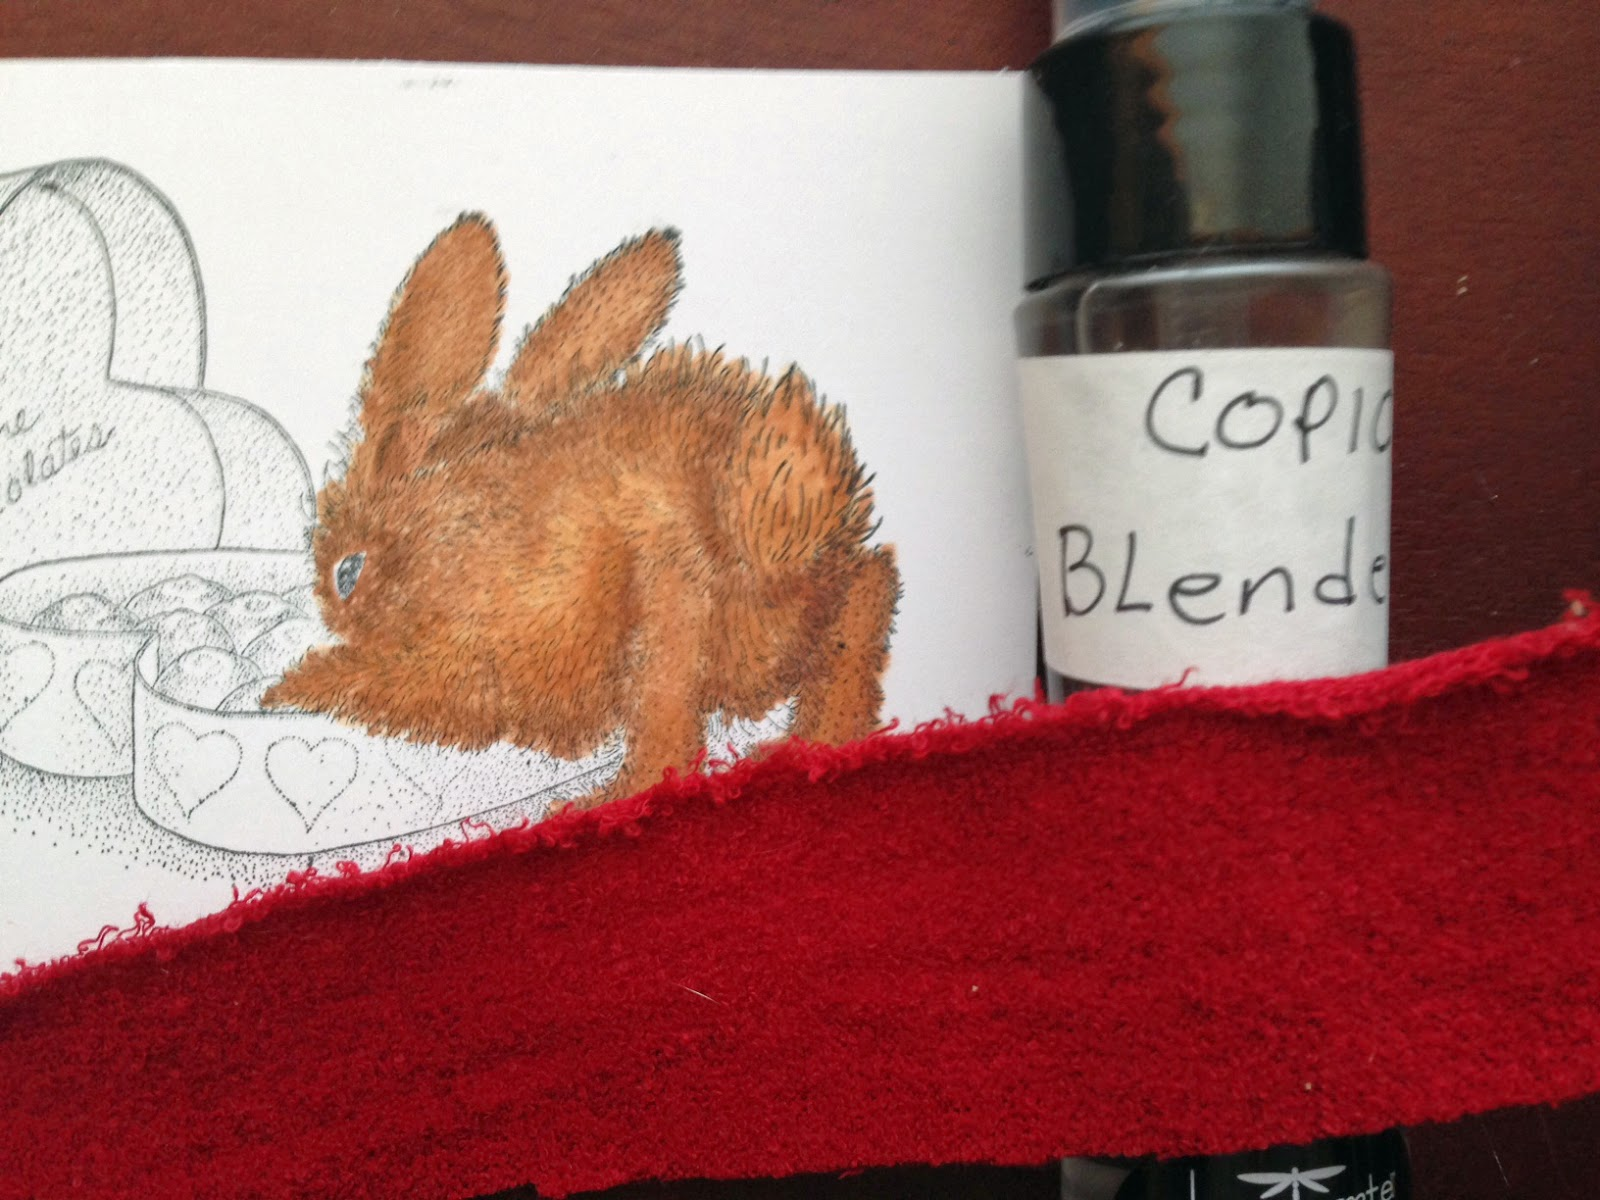 Used the blending solution and fabric to add texture to the bunny.